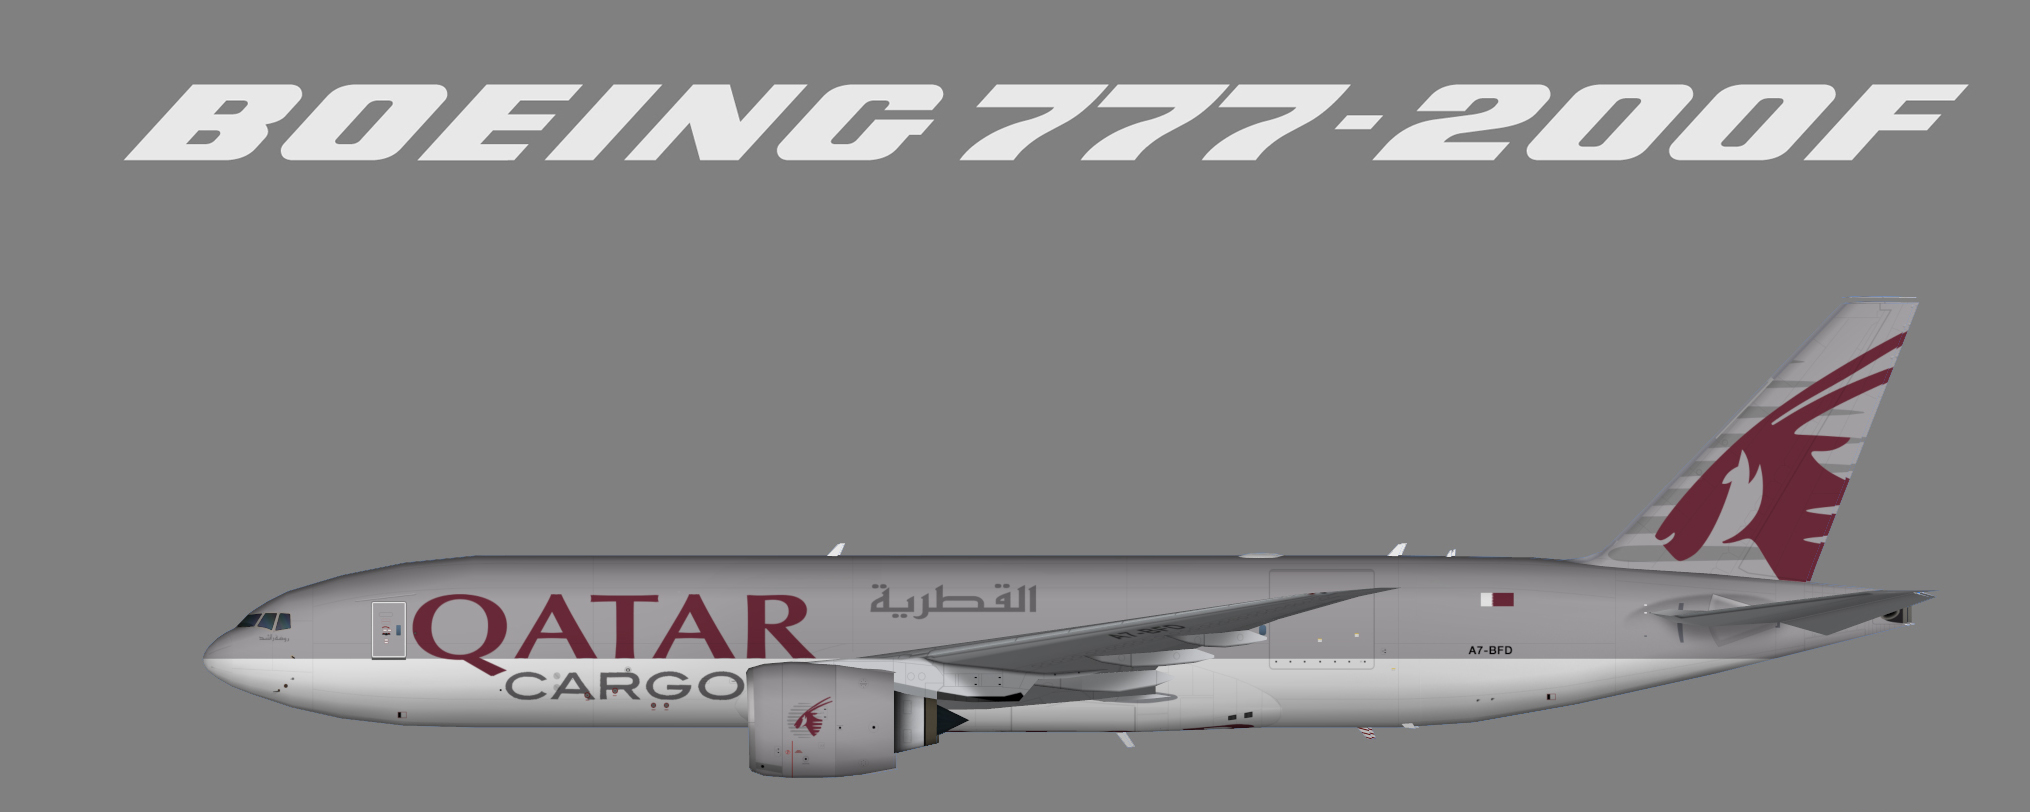 Qatar Airways Cargo Boeing 777F